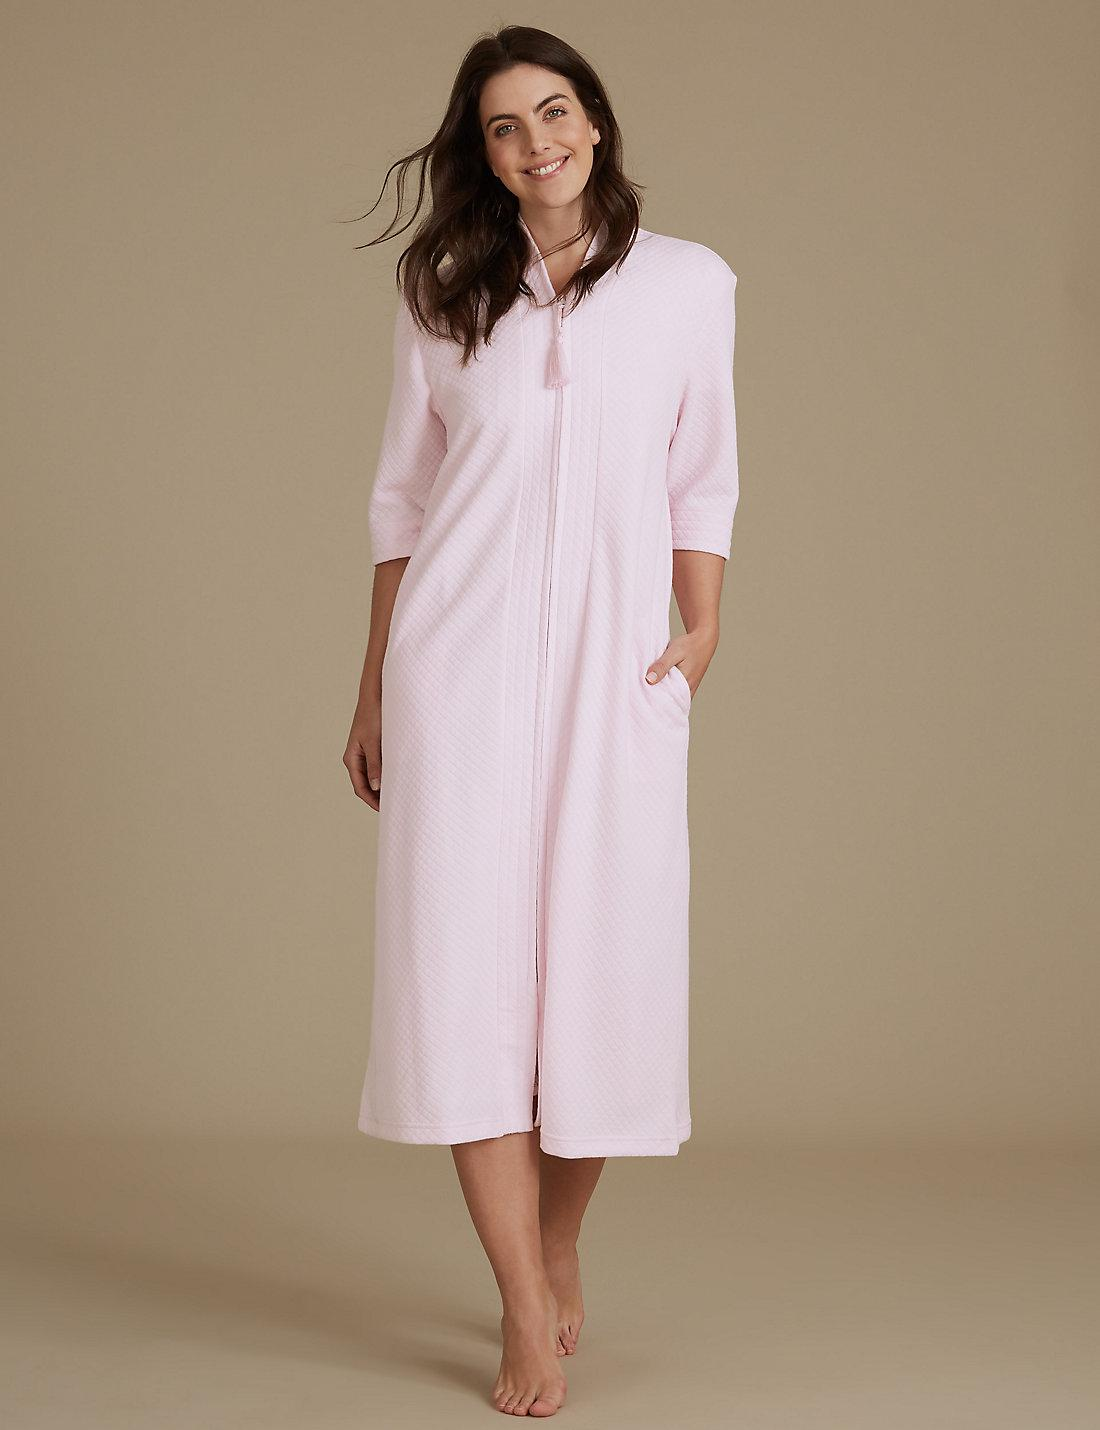 Lyst - Marks & Spencer Quilted Zip Through Dressing Gown in Pink